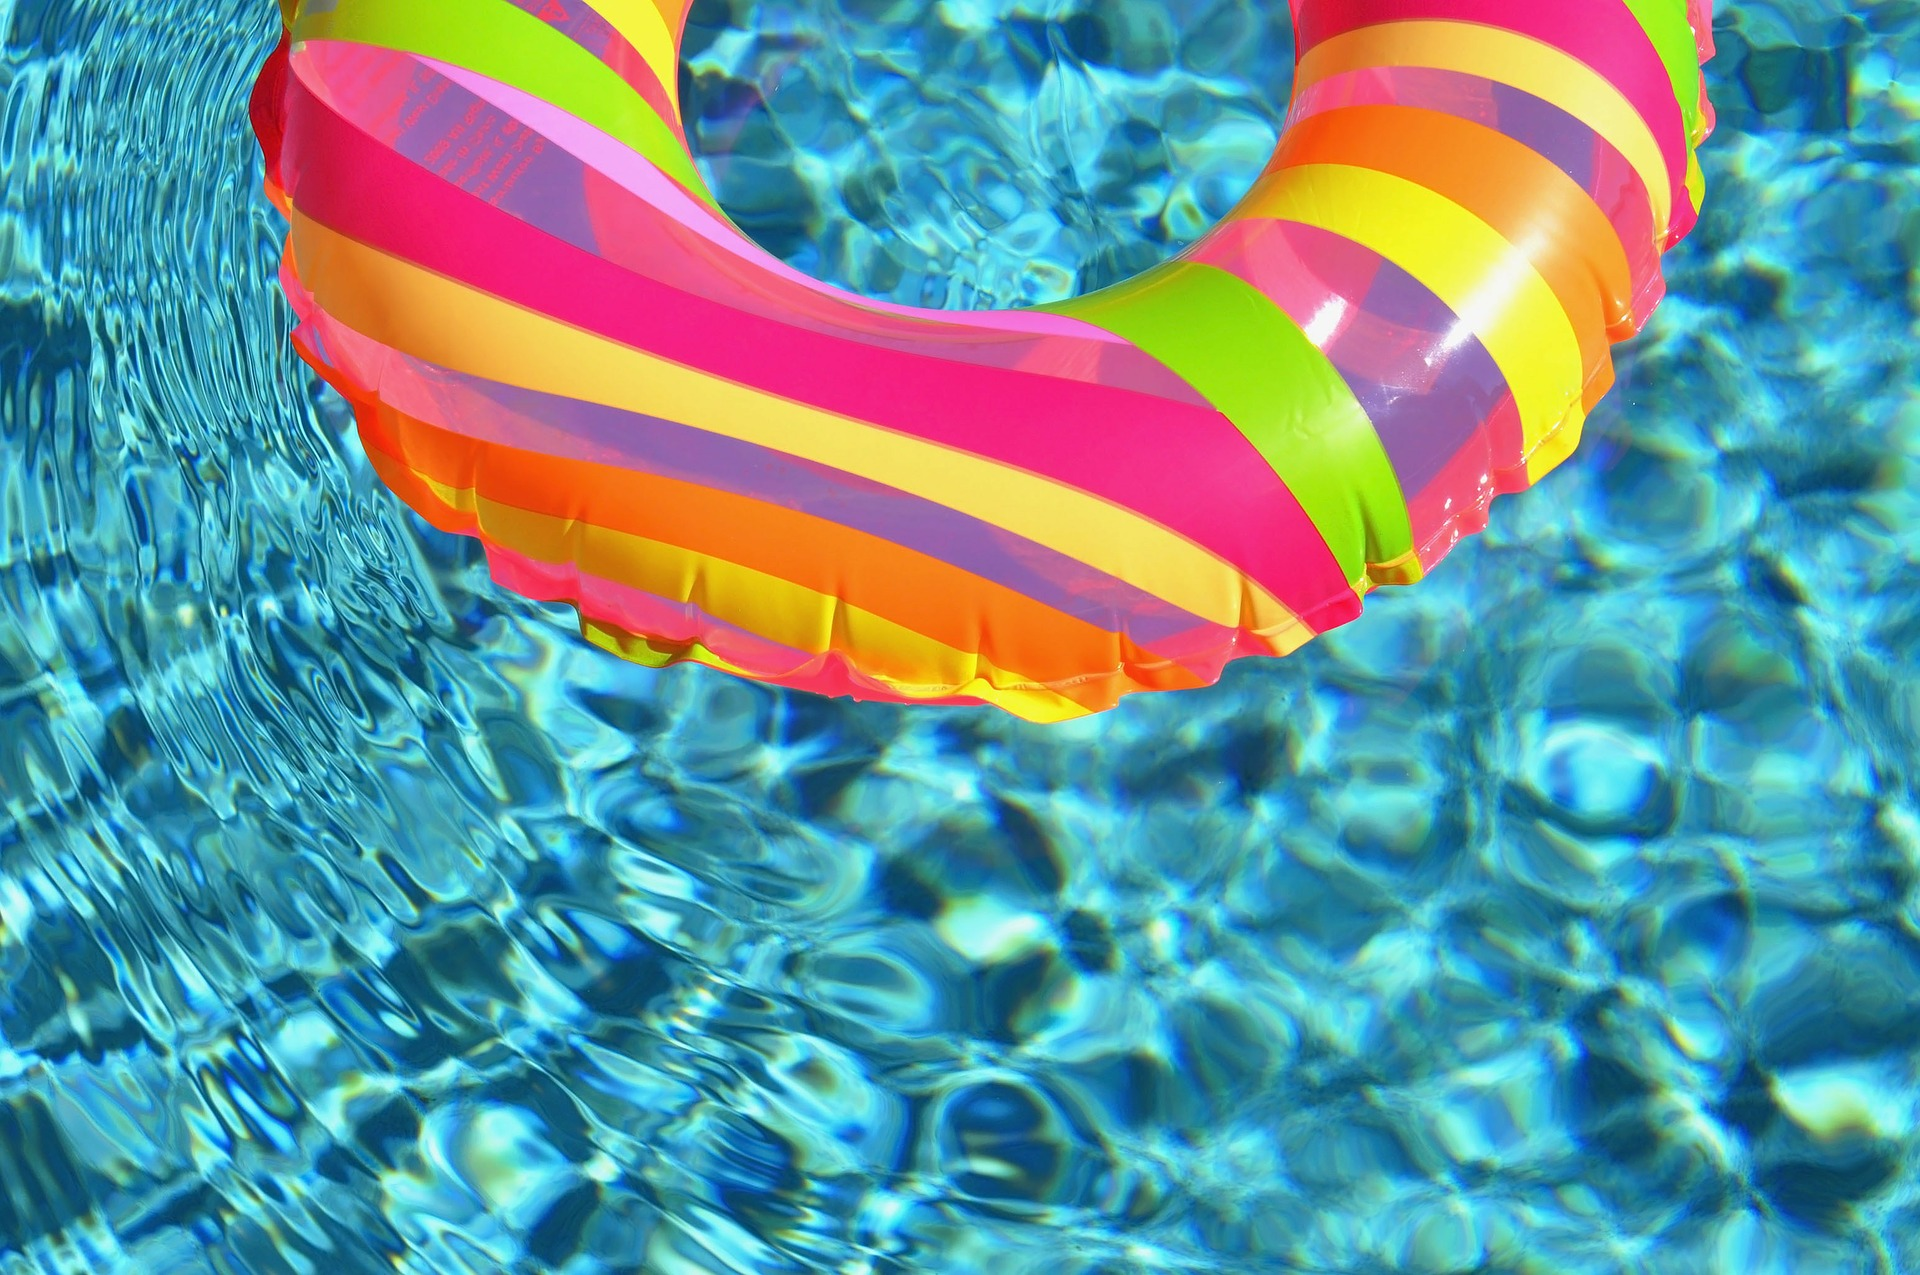 A blow-up swimming ring in a pool